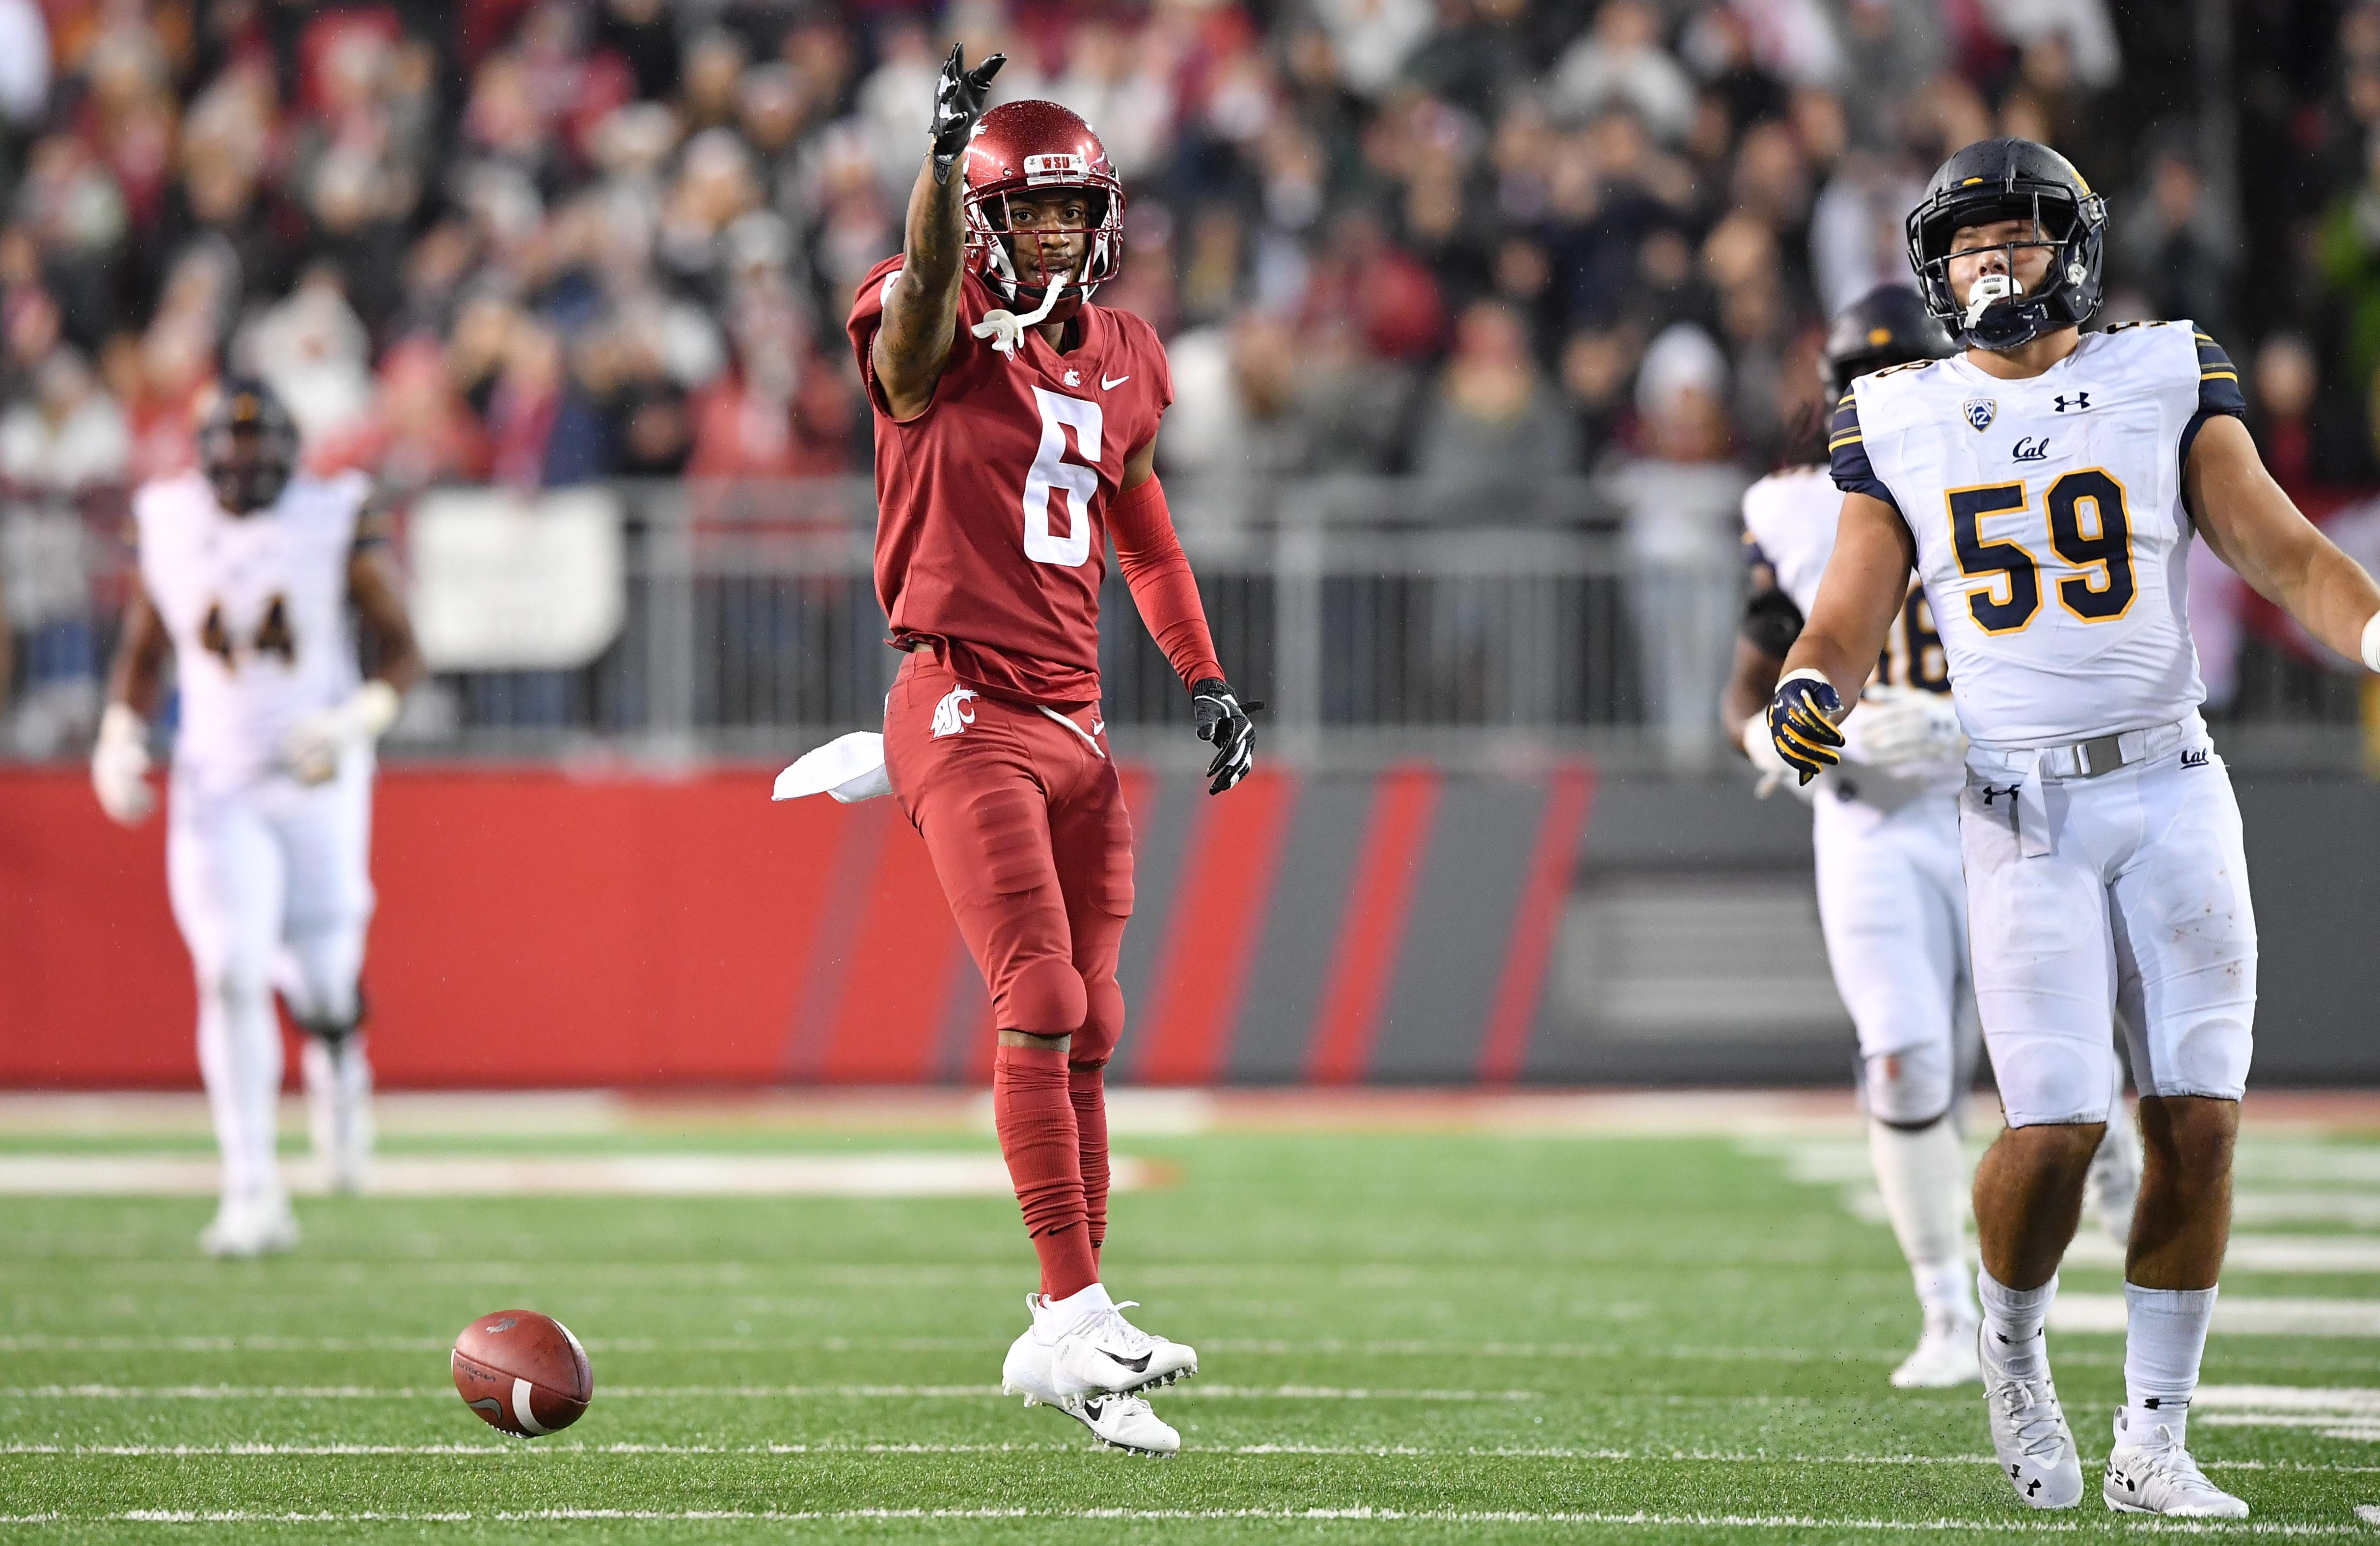 Washington State to spend redshirt on